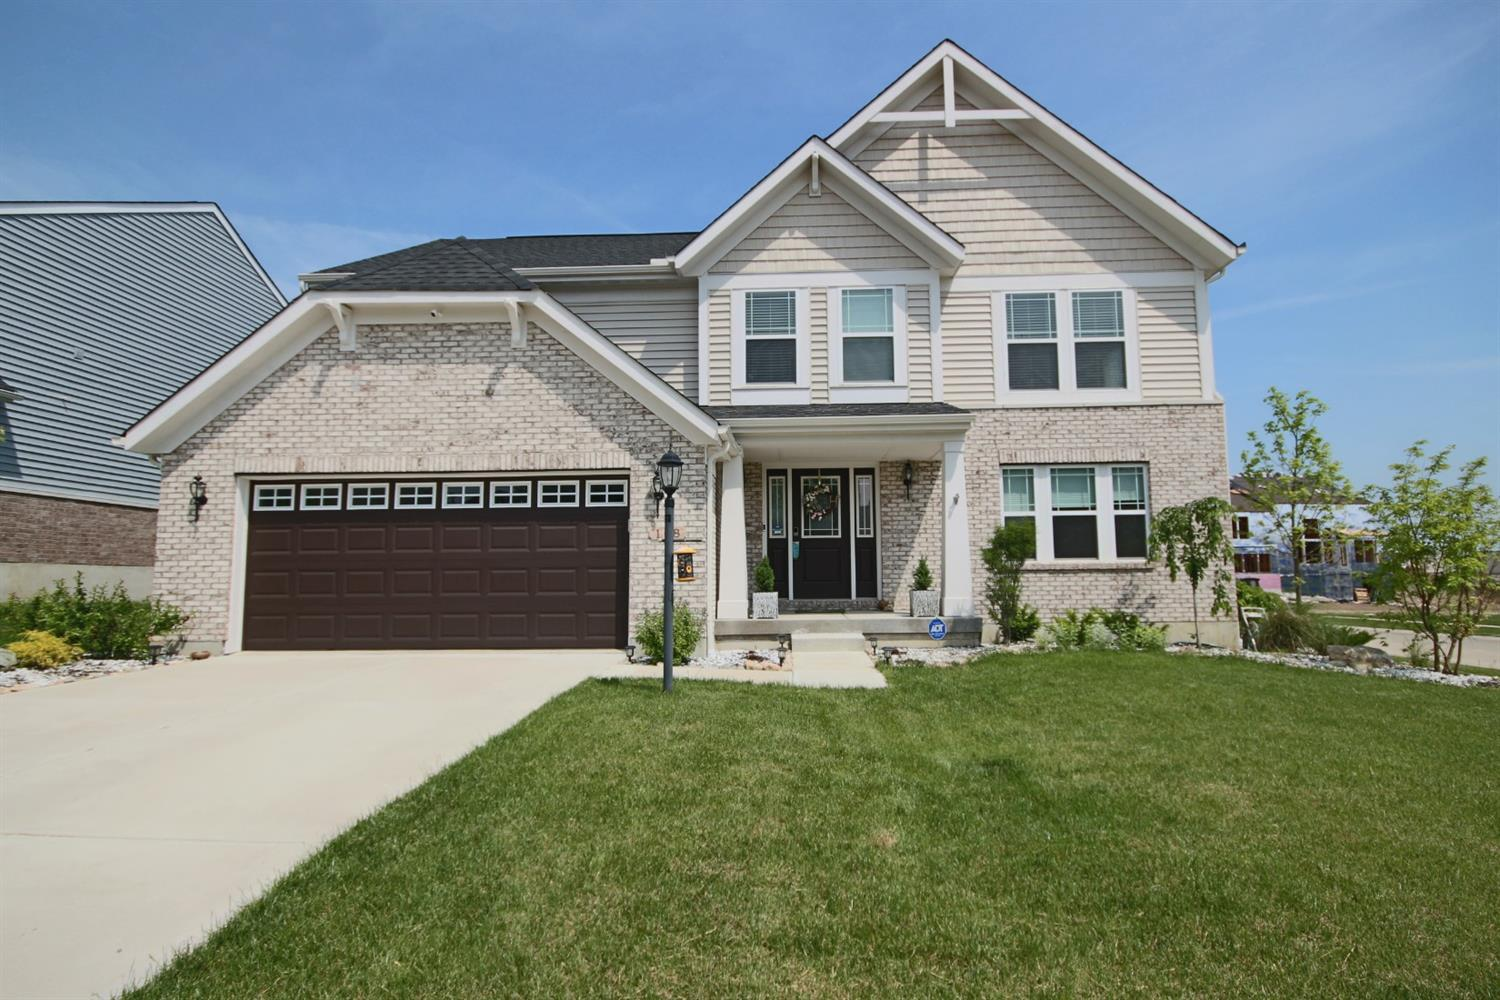 108 Willow Grove Springboro, OH